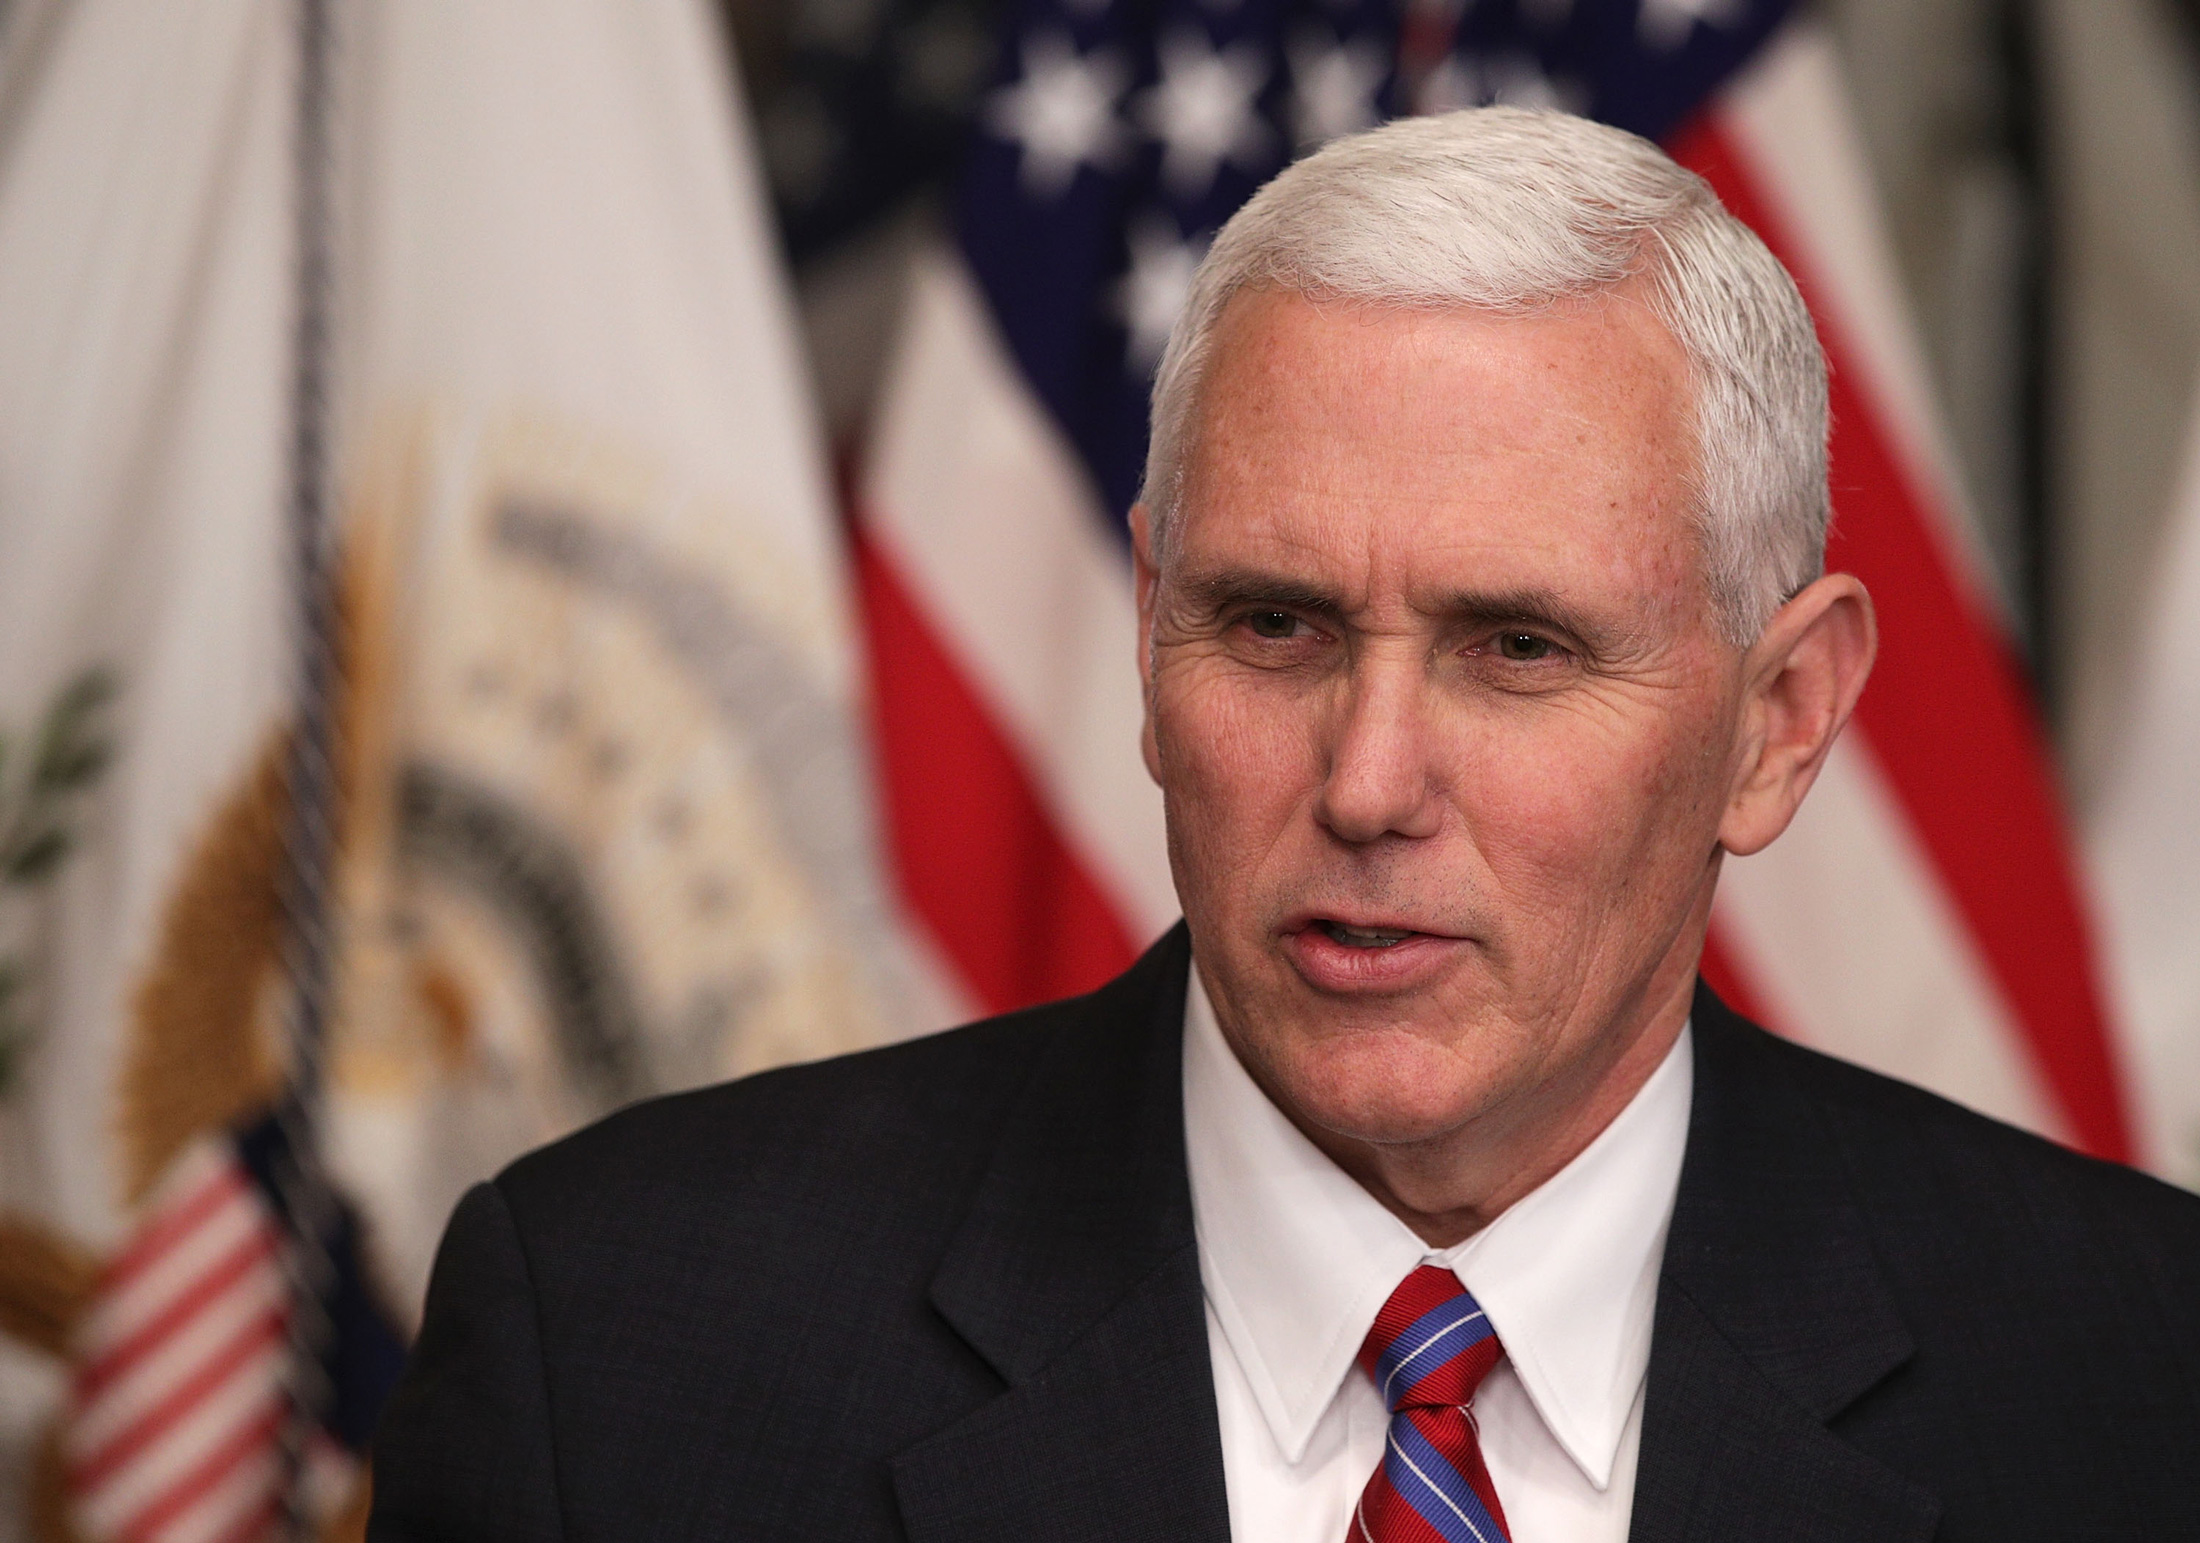 Pence Acknowledges That Trump Tax Plan Could Increase Deficit - Bloomberg